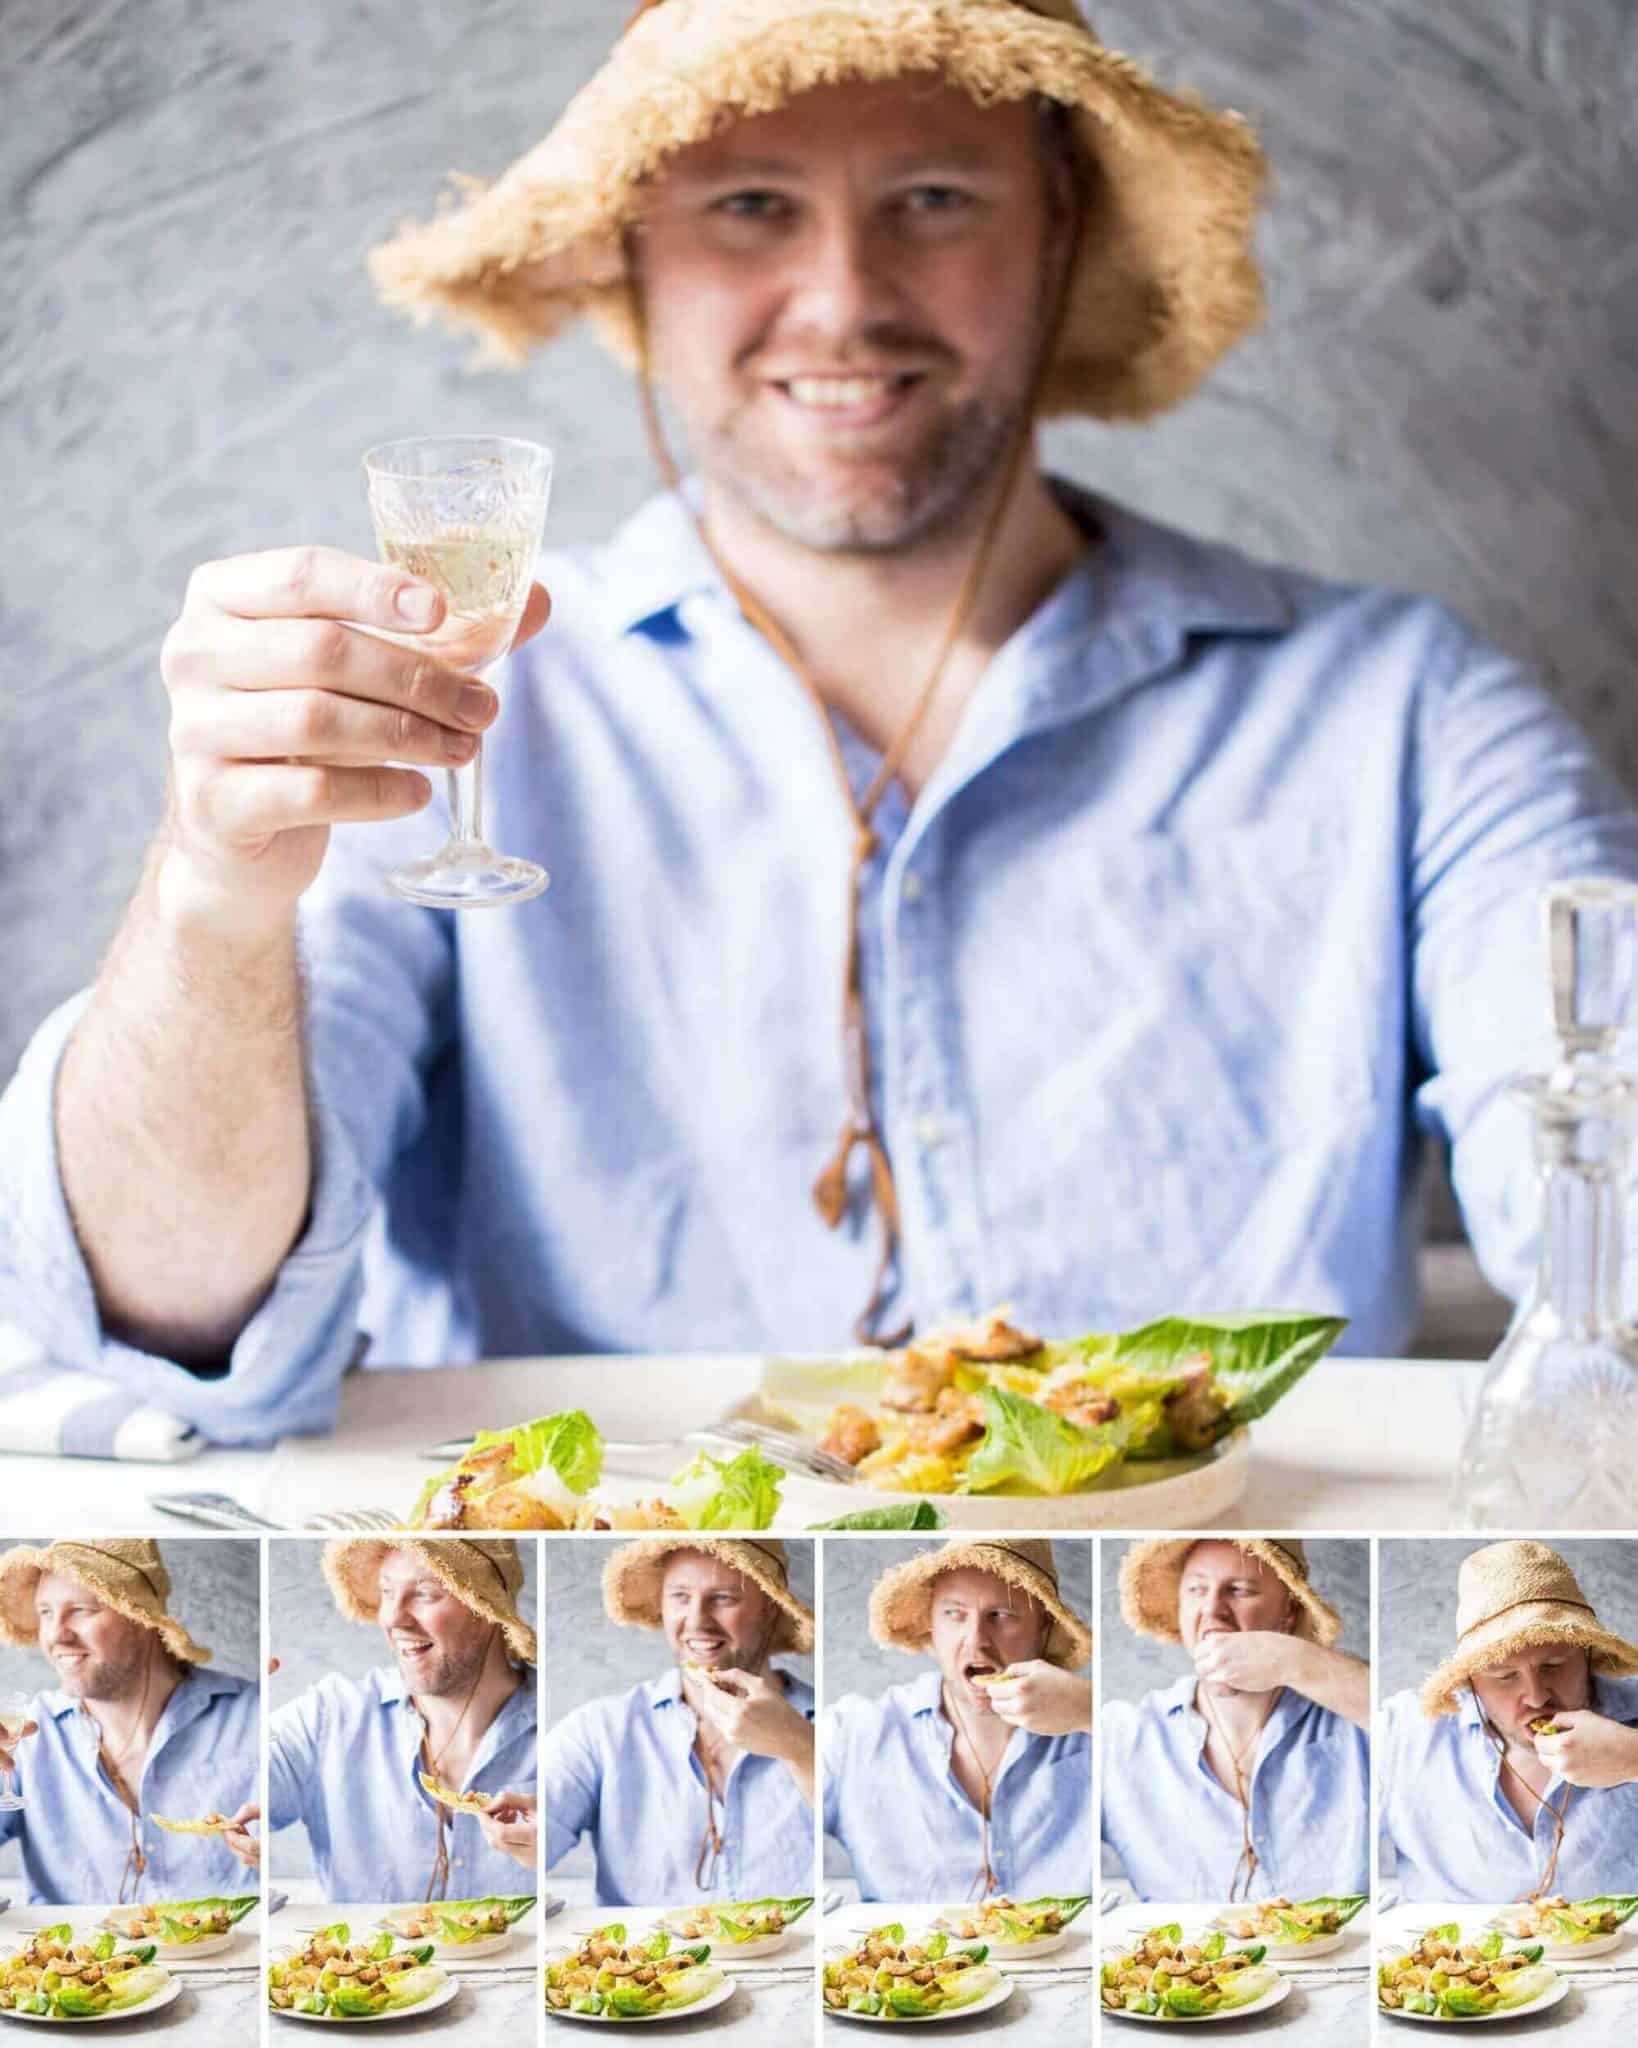 how to eat caesar salad properly